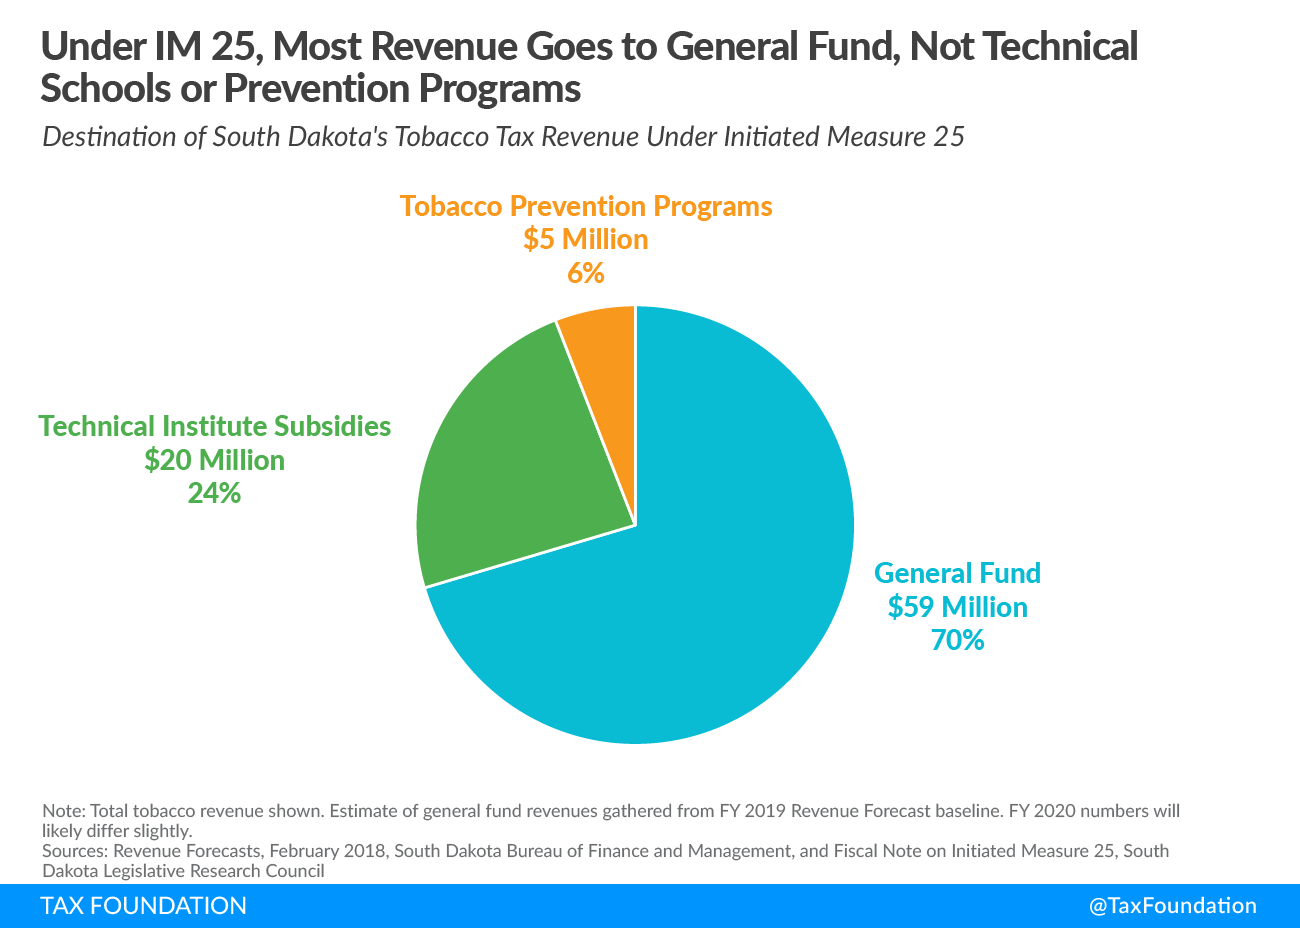 Under IM 25, Most Revenue Goes to General Fund, Not Technical Schools or Prevention Programs